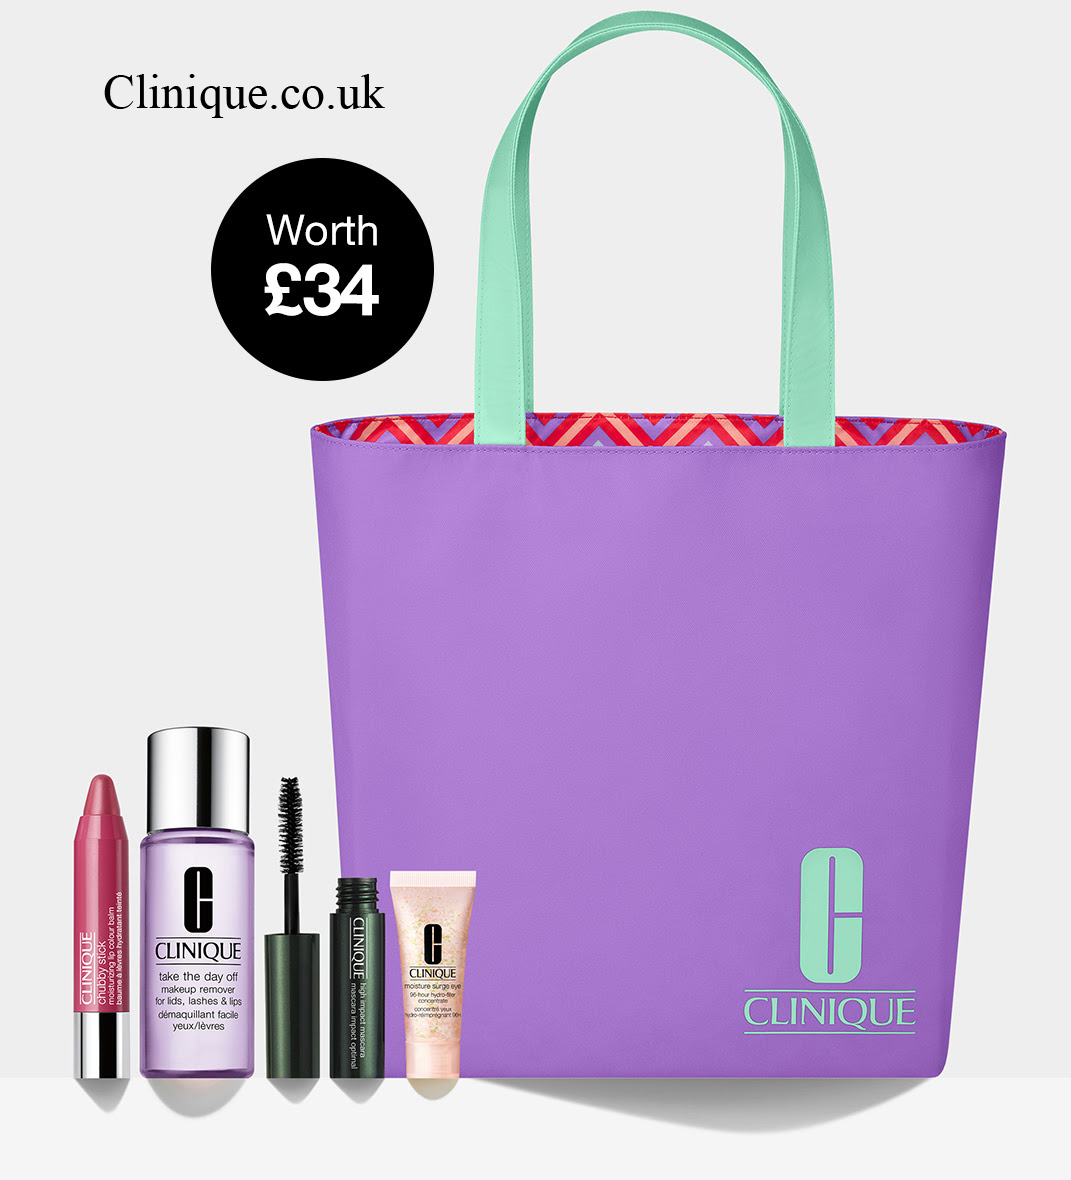 Clinique UK summer offer in 2020 Clinique, Clinique gift